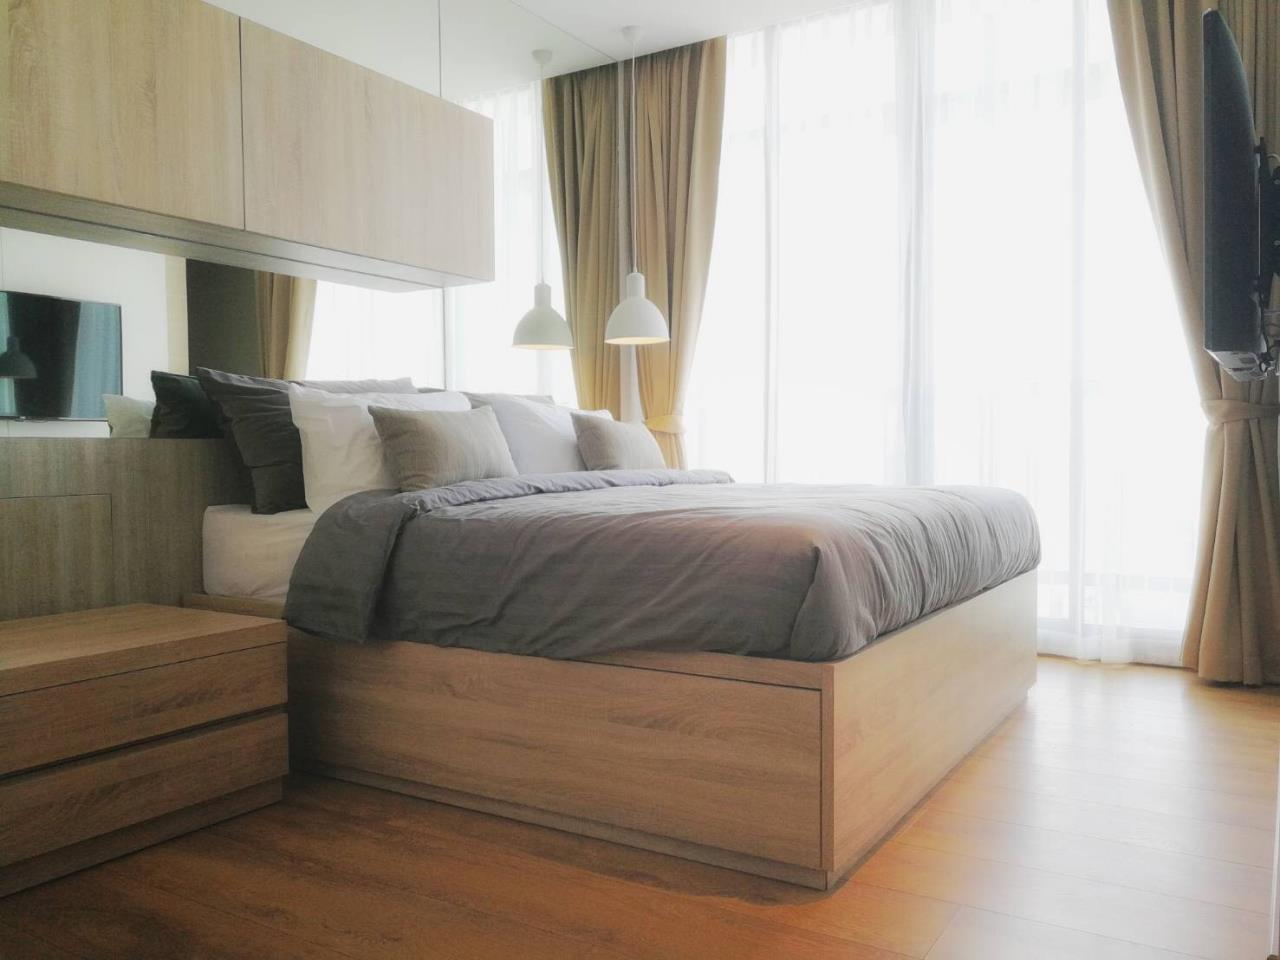 SmartProperty Agency's For Rent, Park24, 1Bedroom, 28sq.m. 38th flr. Fully-furnished, near BTS Prompong (unblocked city view) 1